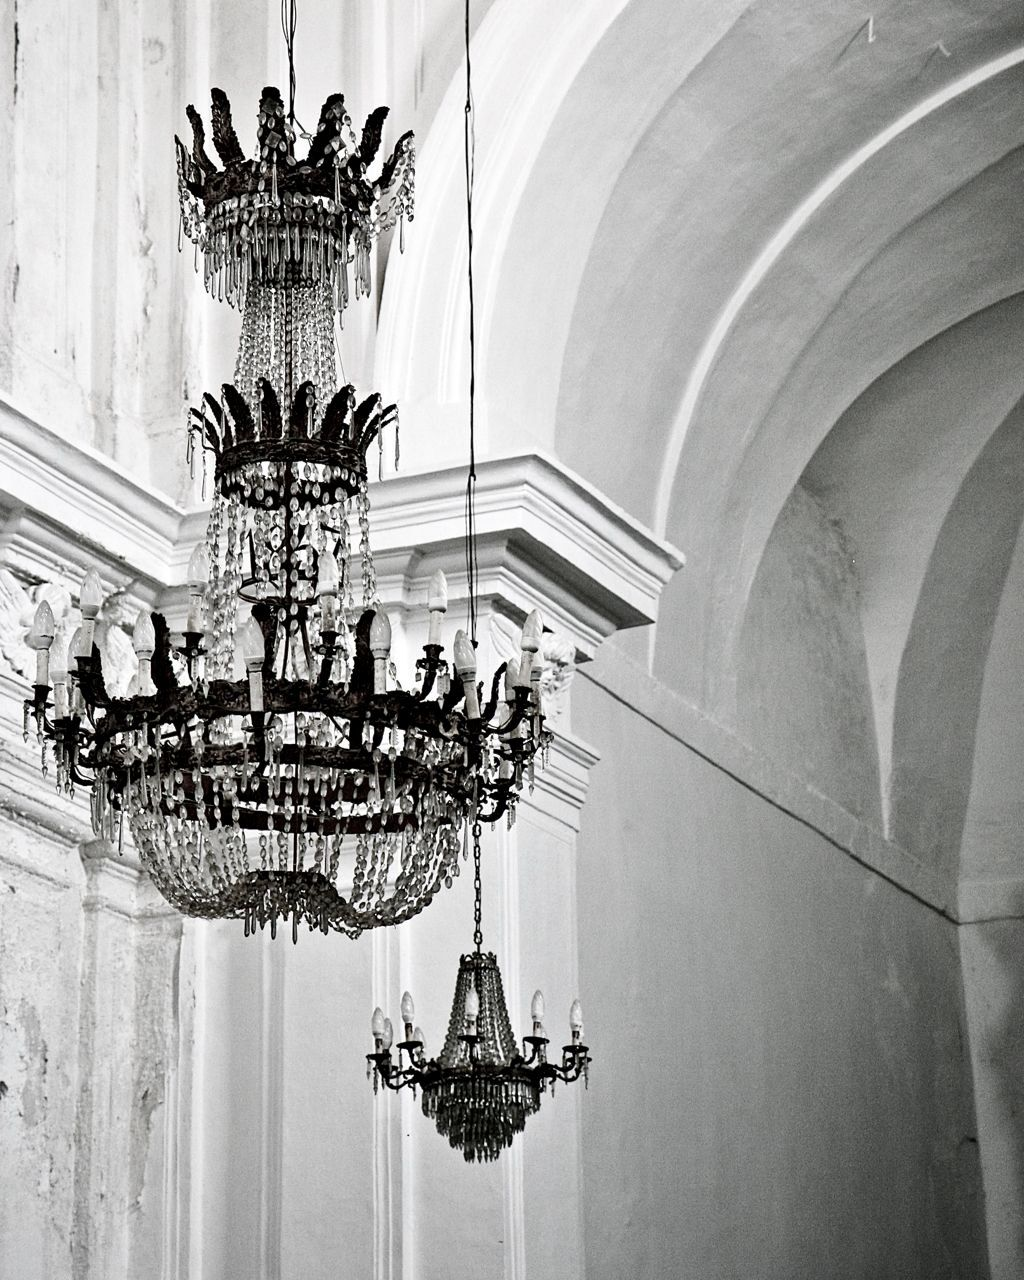 Chandelier Photograph Black And White Photography Glamorous Elegant Print Sicily Italy Italian Home Decor Wall Art 30 00 Via Etsy